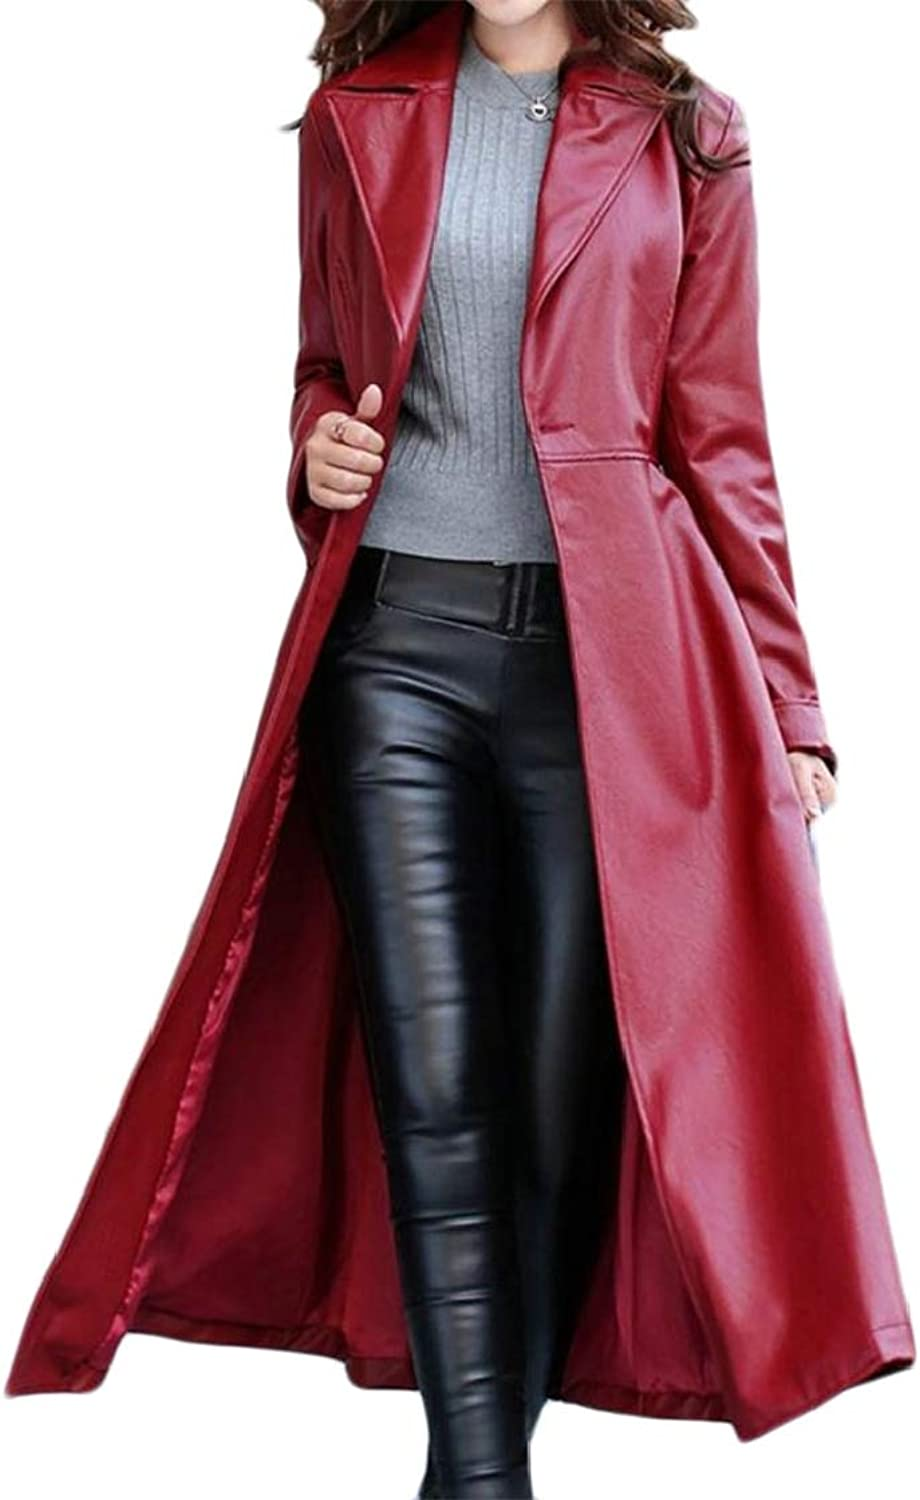 Etecredpow Womens MidLength Outdoors Swing Belt Faux Leather Warm Fall Winter Lapel Trench Coat